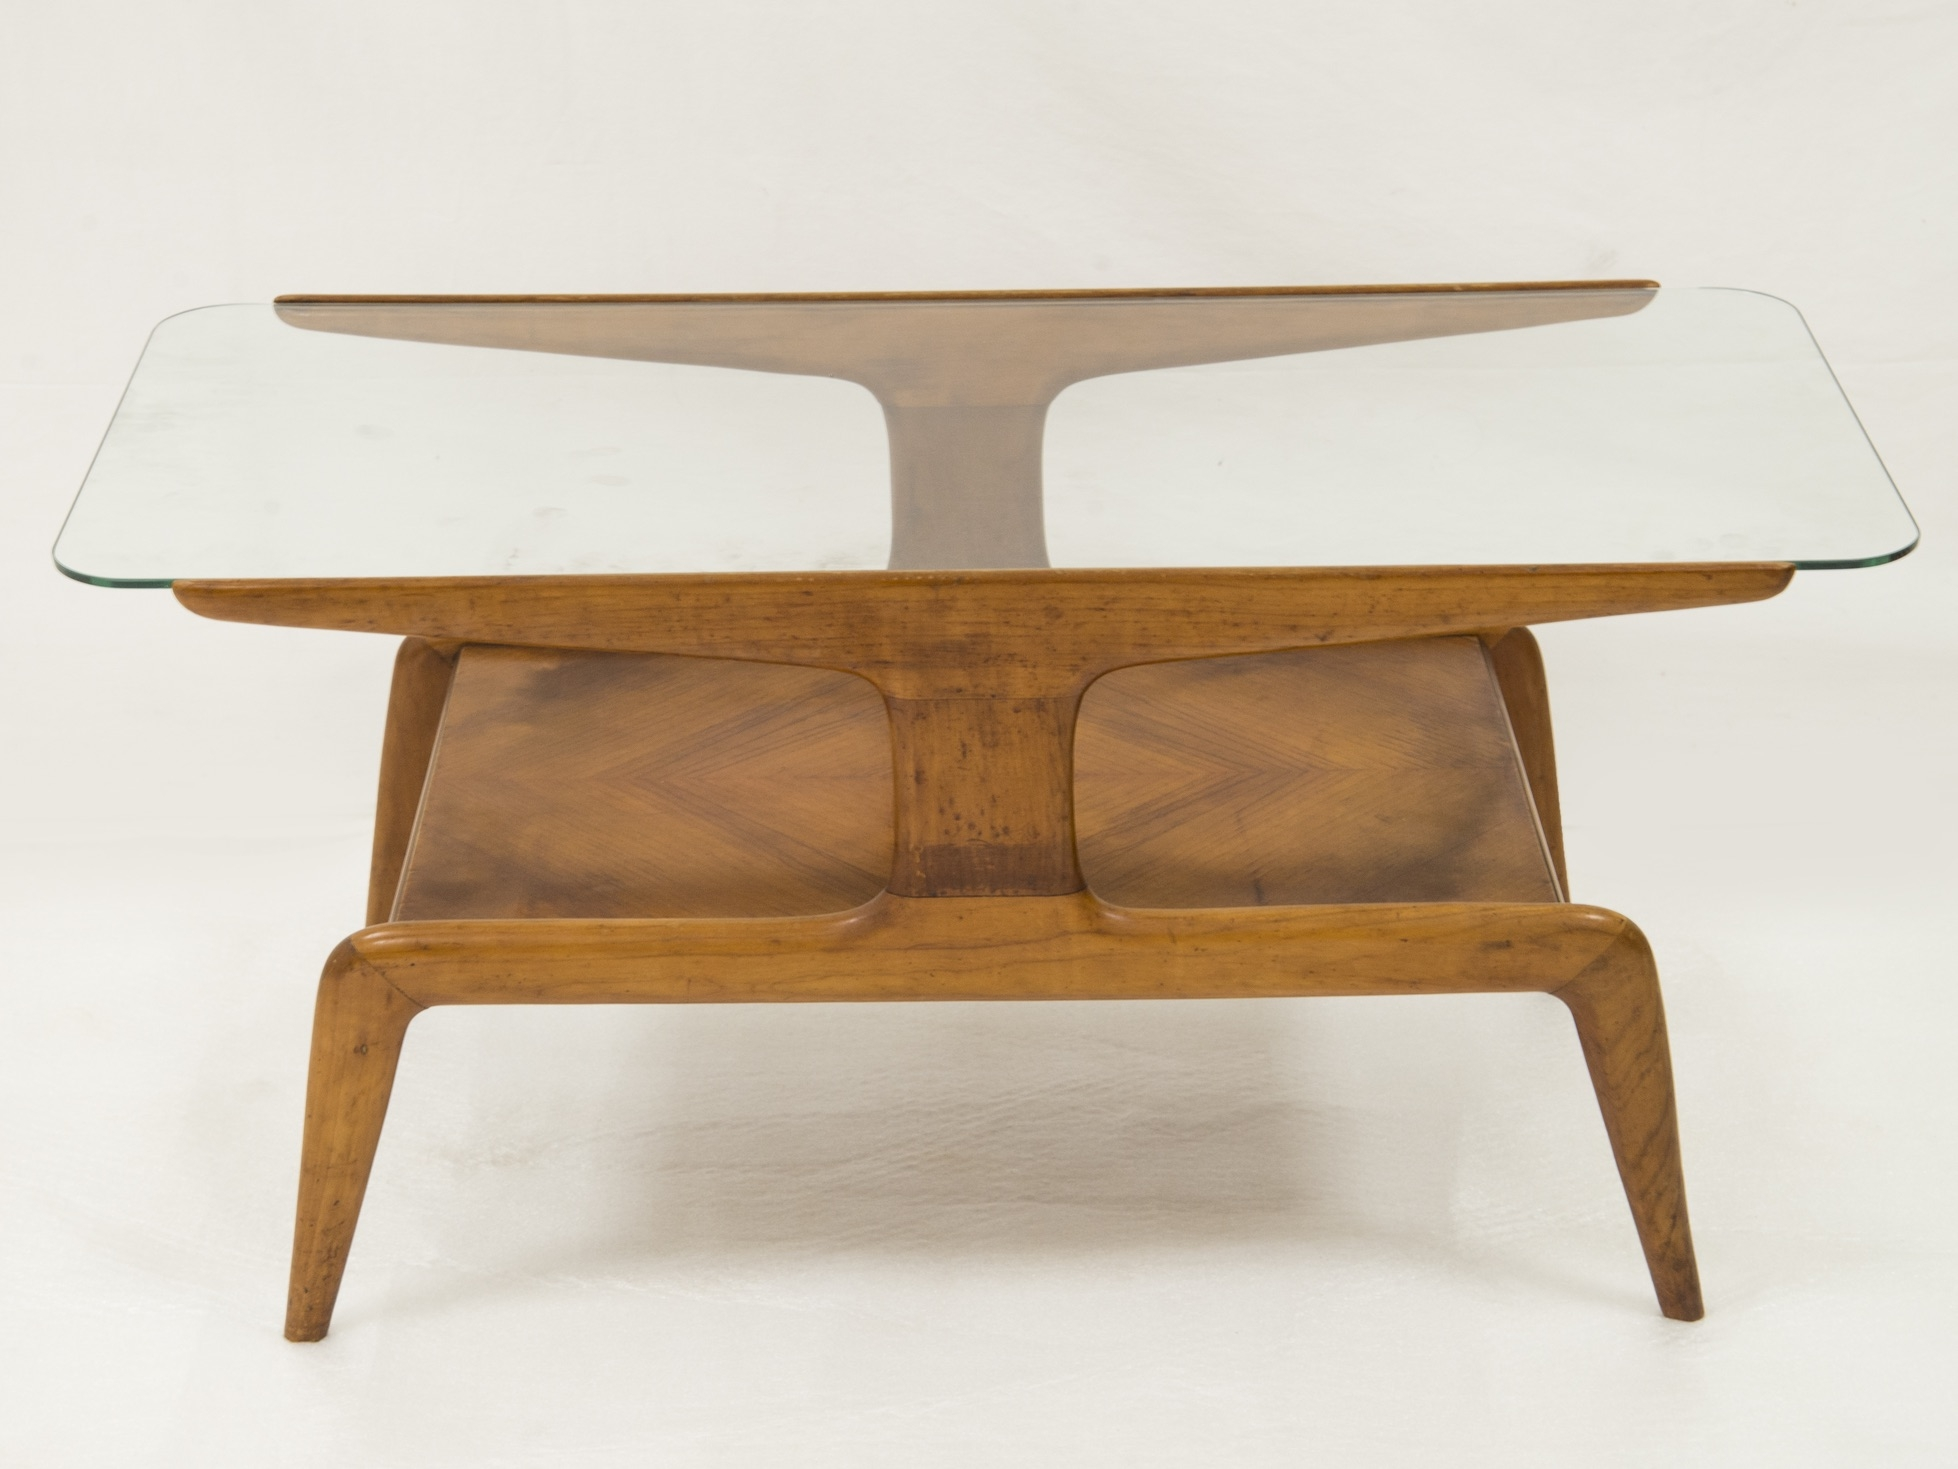 Table Basse Bois Et Verre Gio Ponti Side Table Ca 1950 Maison Rapin